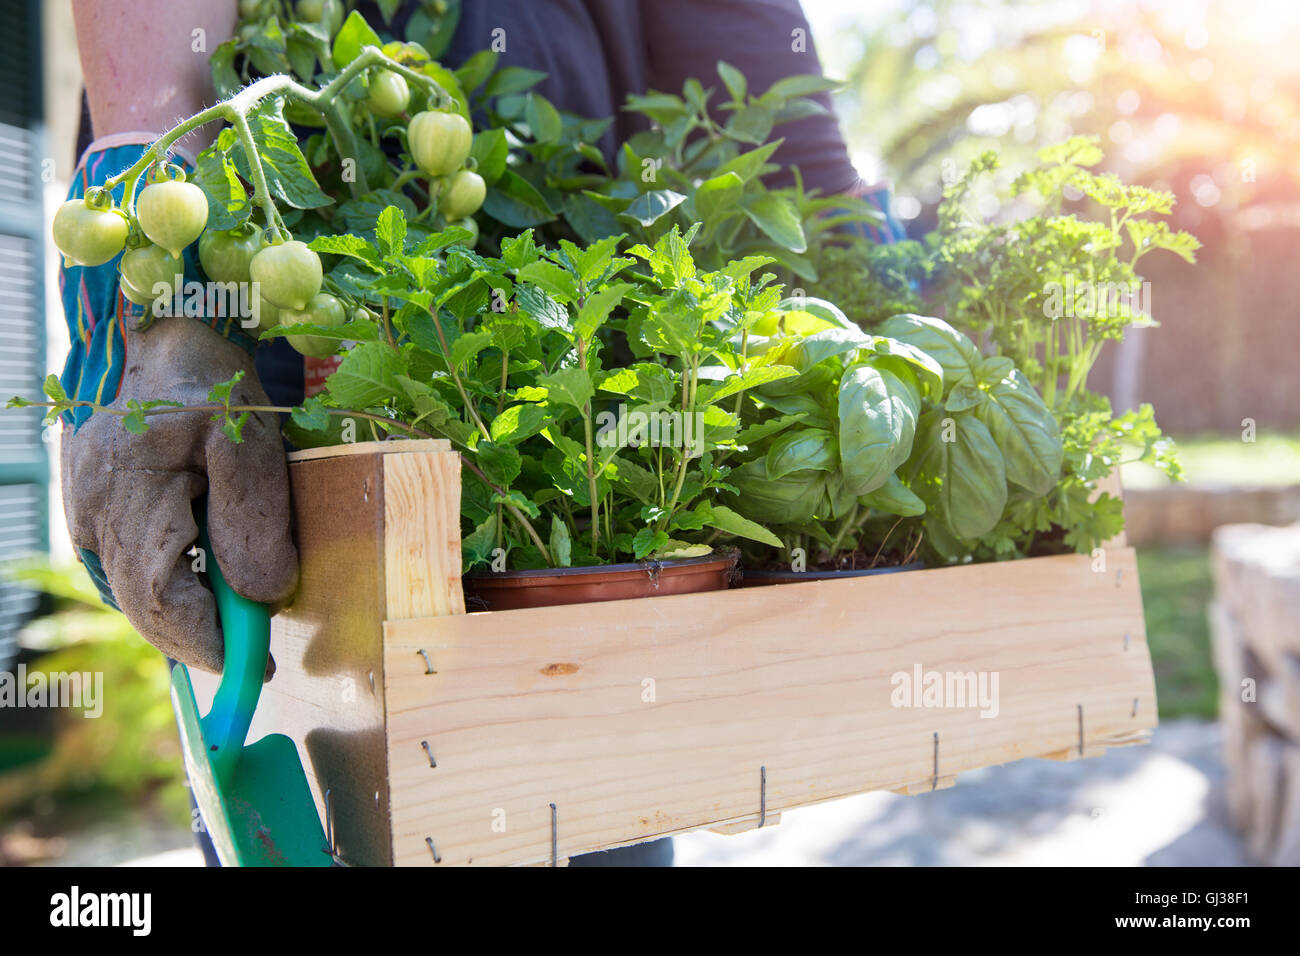 Woman carrying crate of herb plants in garden - Stock Image